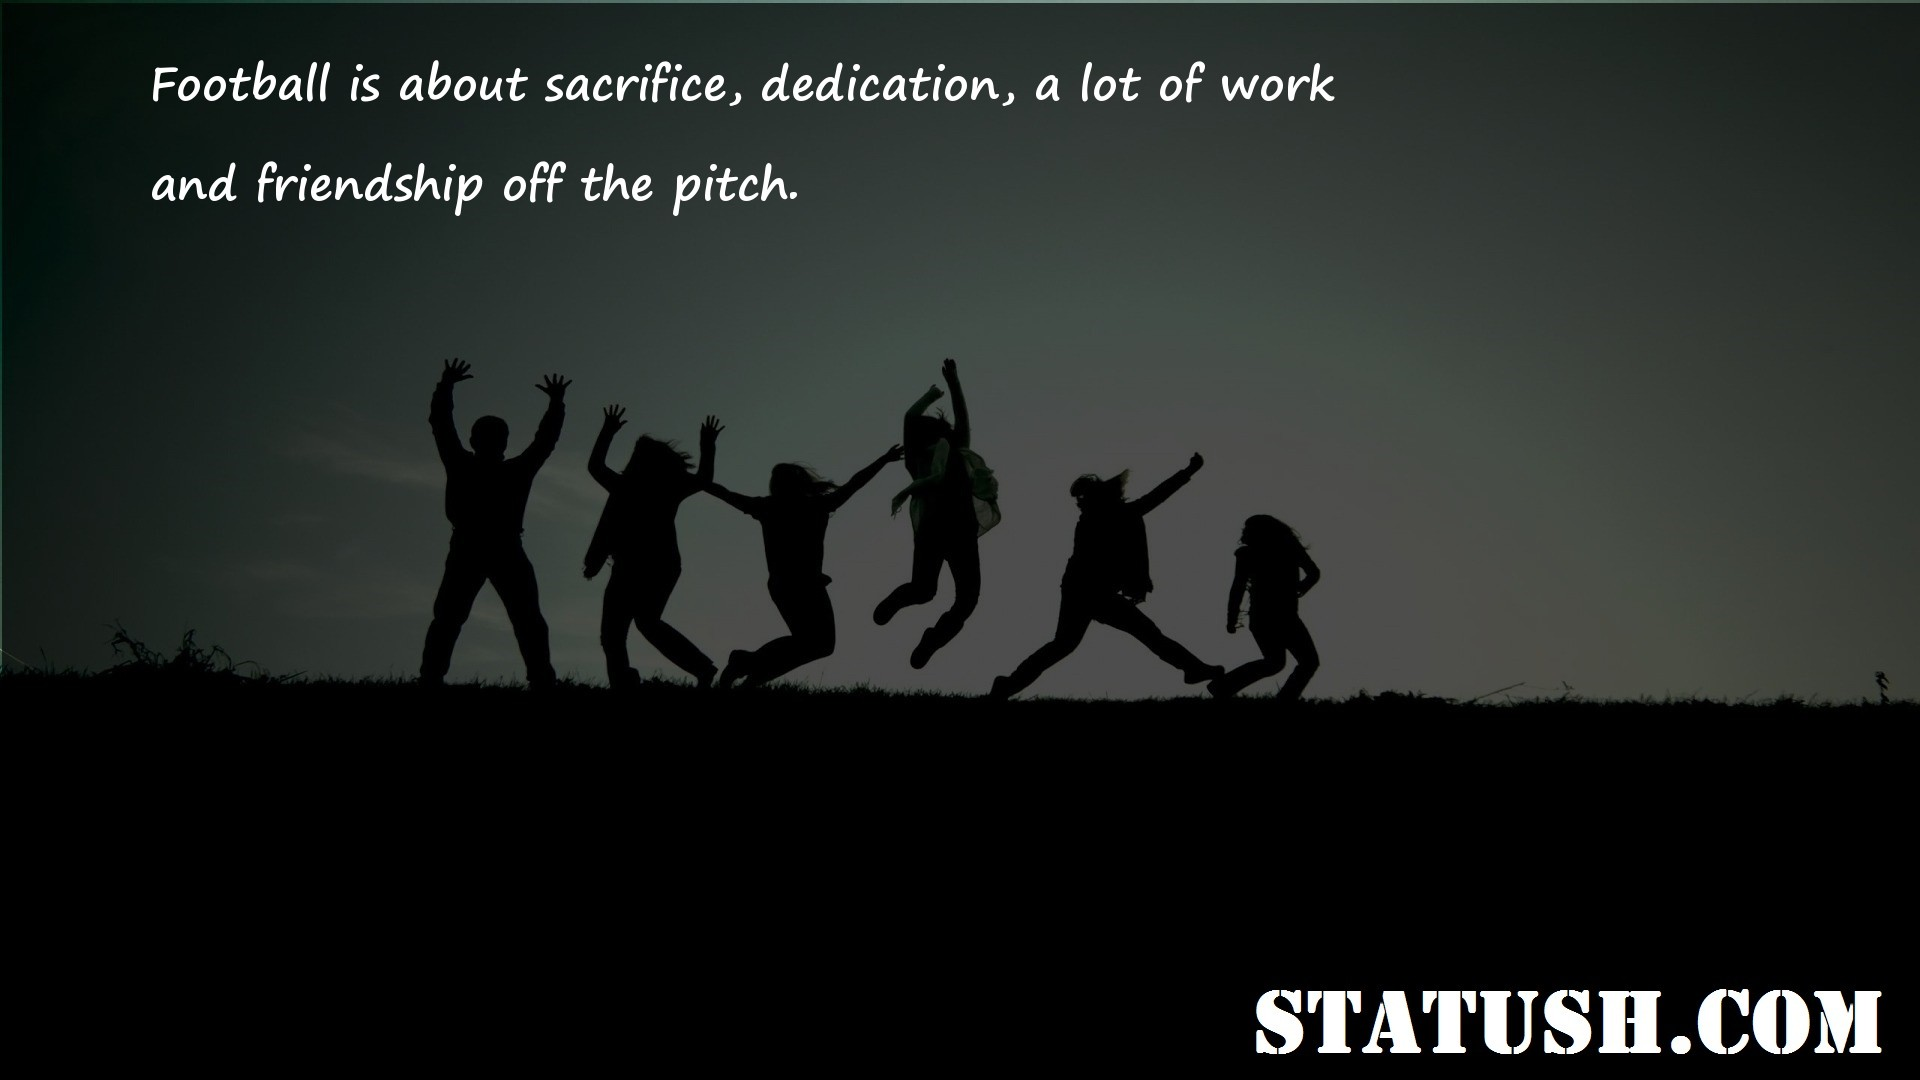 Football is about sacrifice dedication a lot of work